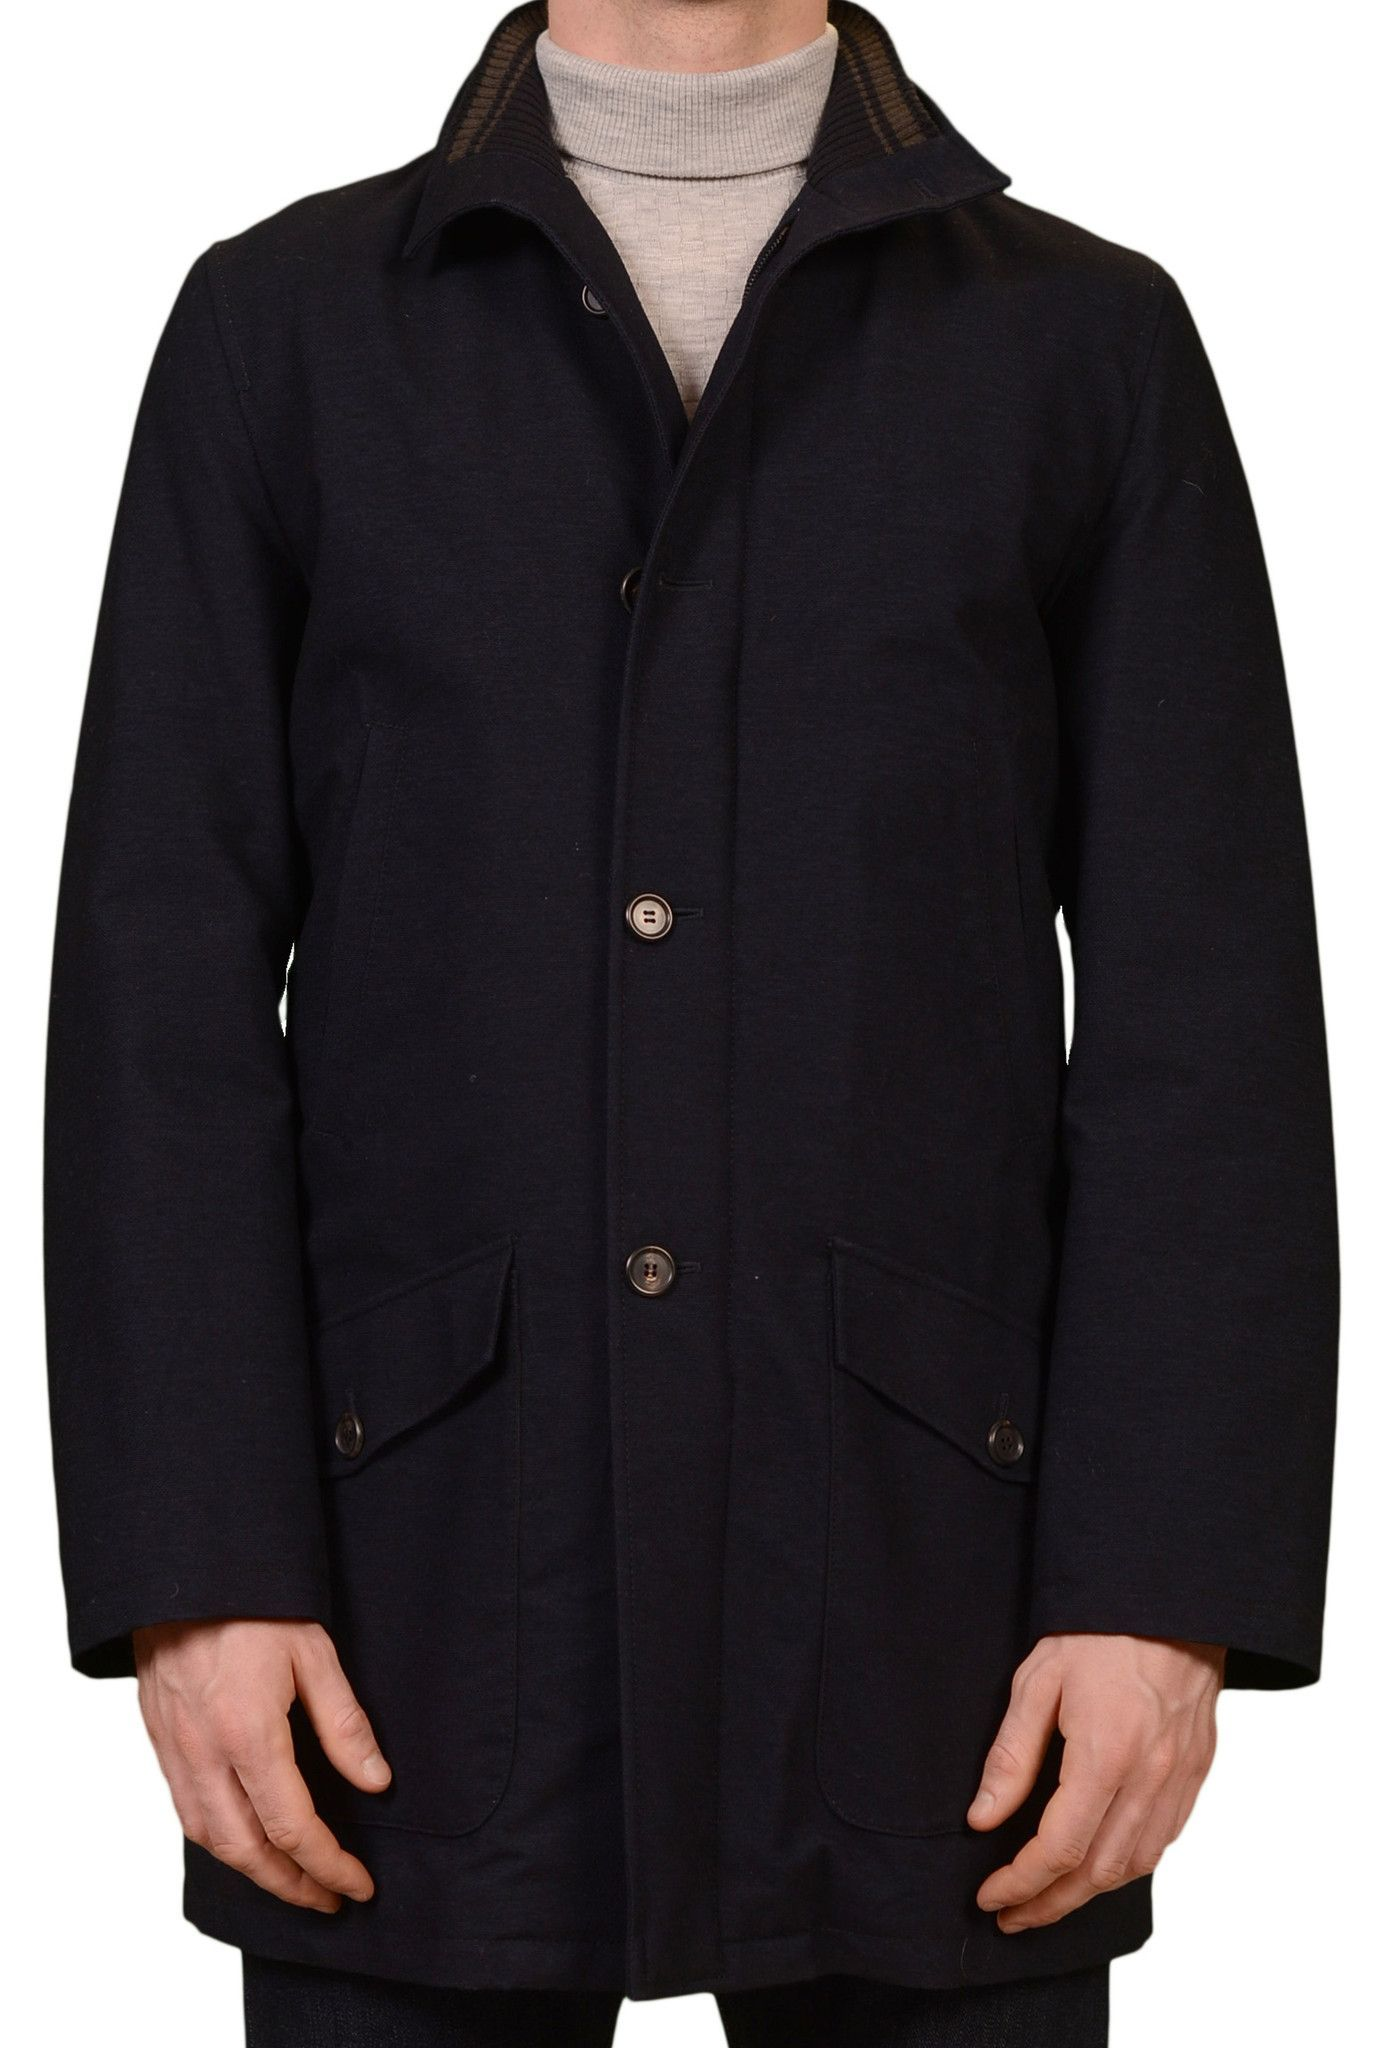 Punto Rosso by KITON Napoli Navy Blue Wool Blend Puffer Jacket Coat 50 NEW 40 K